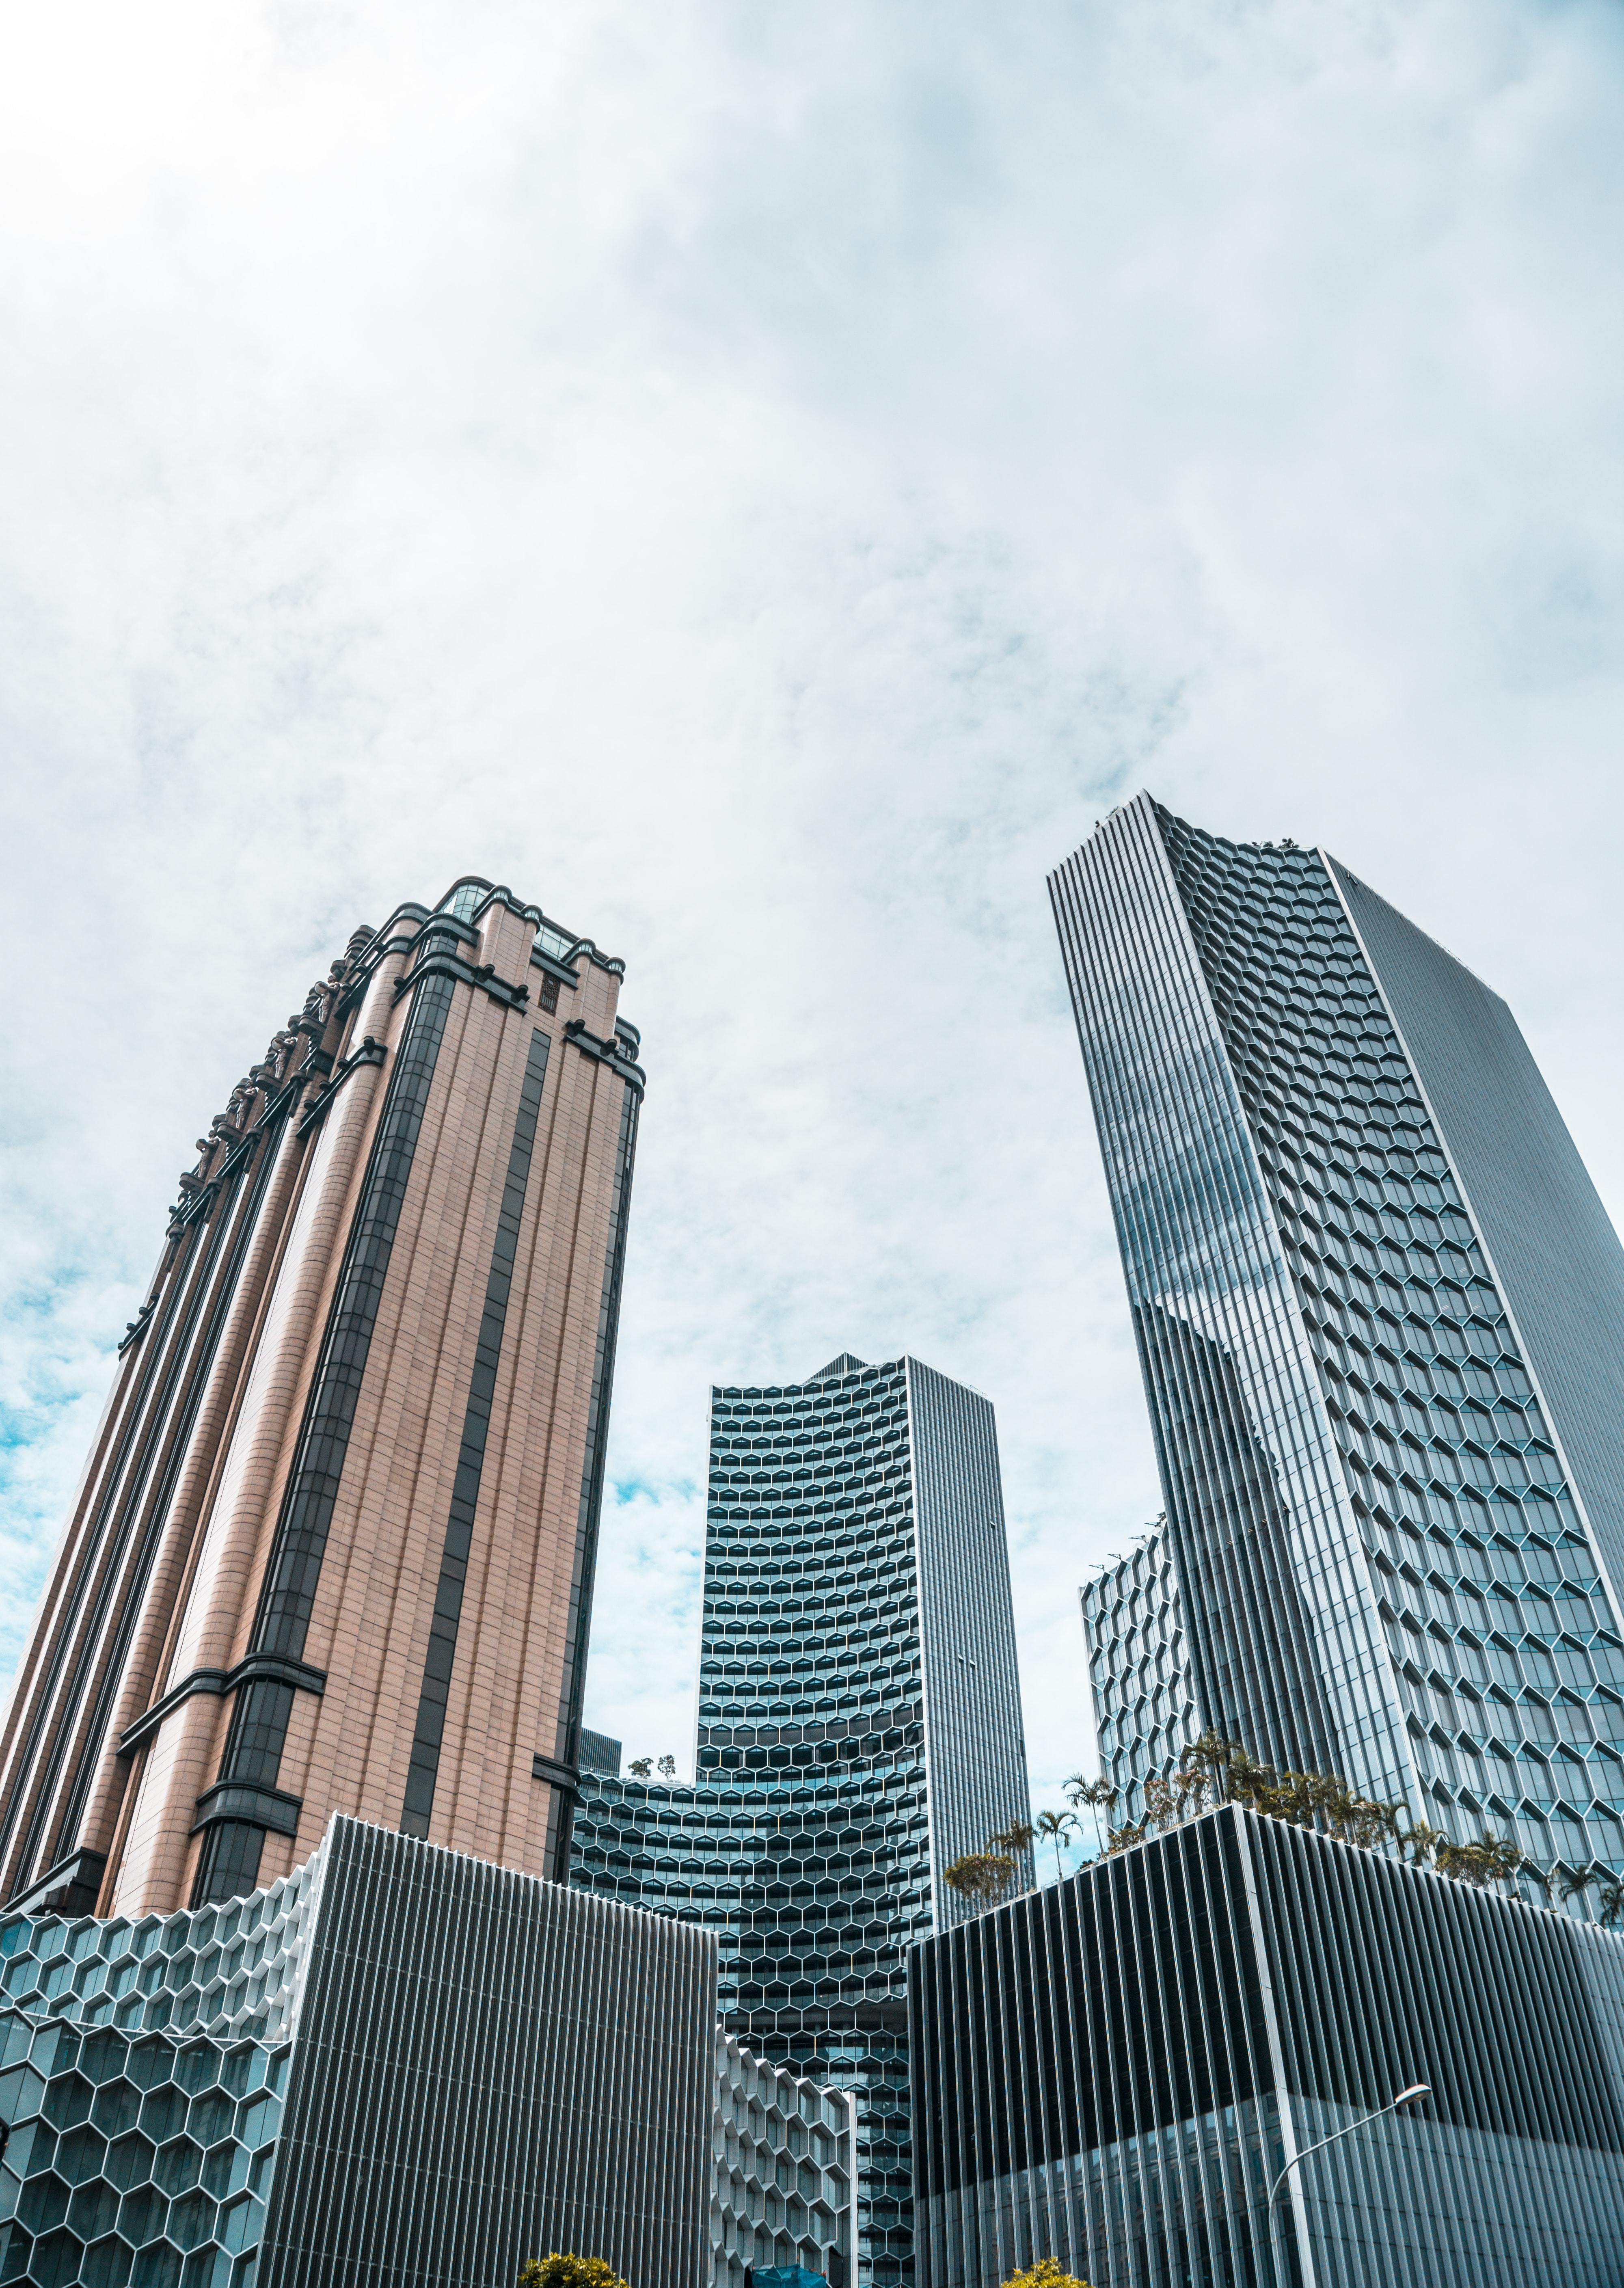 low angle photo of curtain wall buildings at daytime